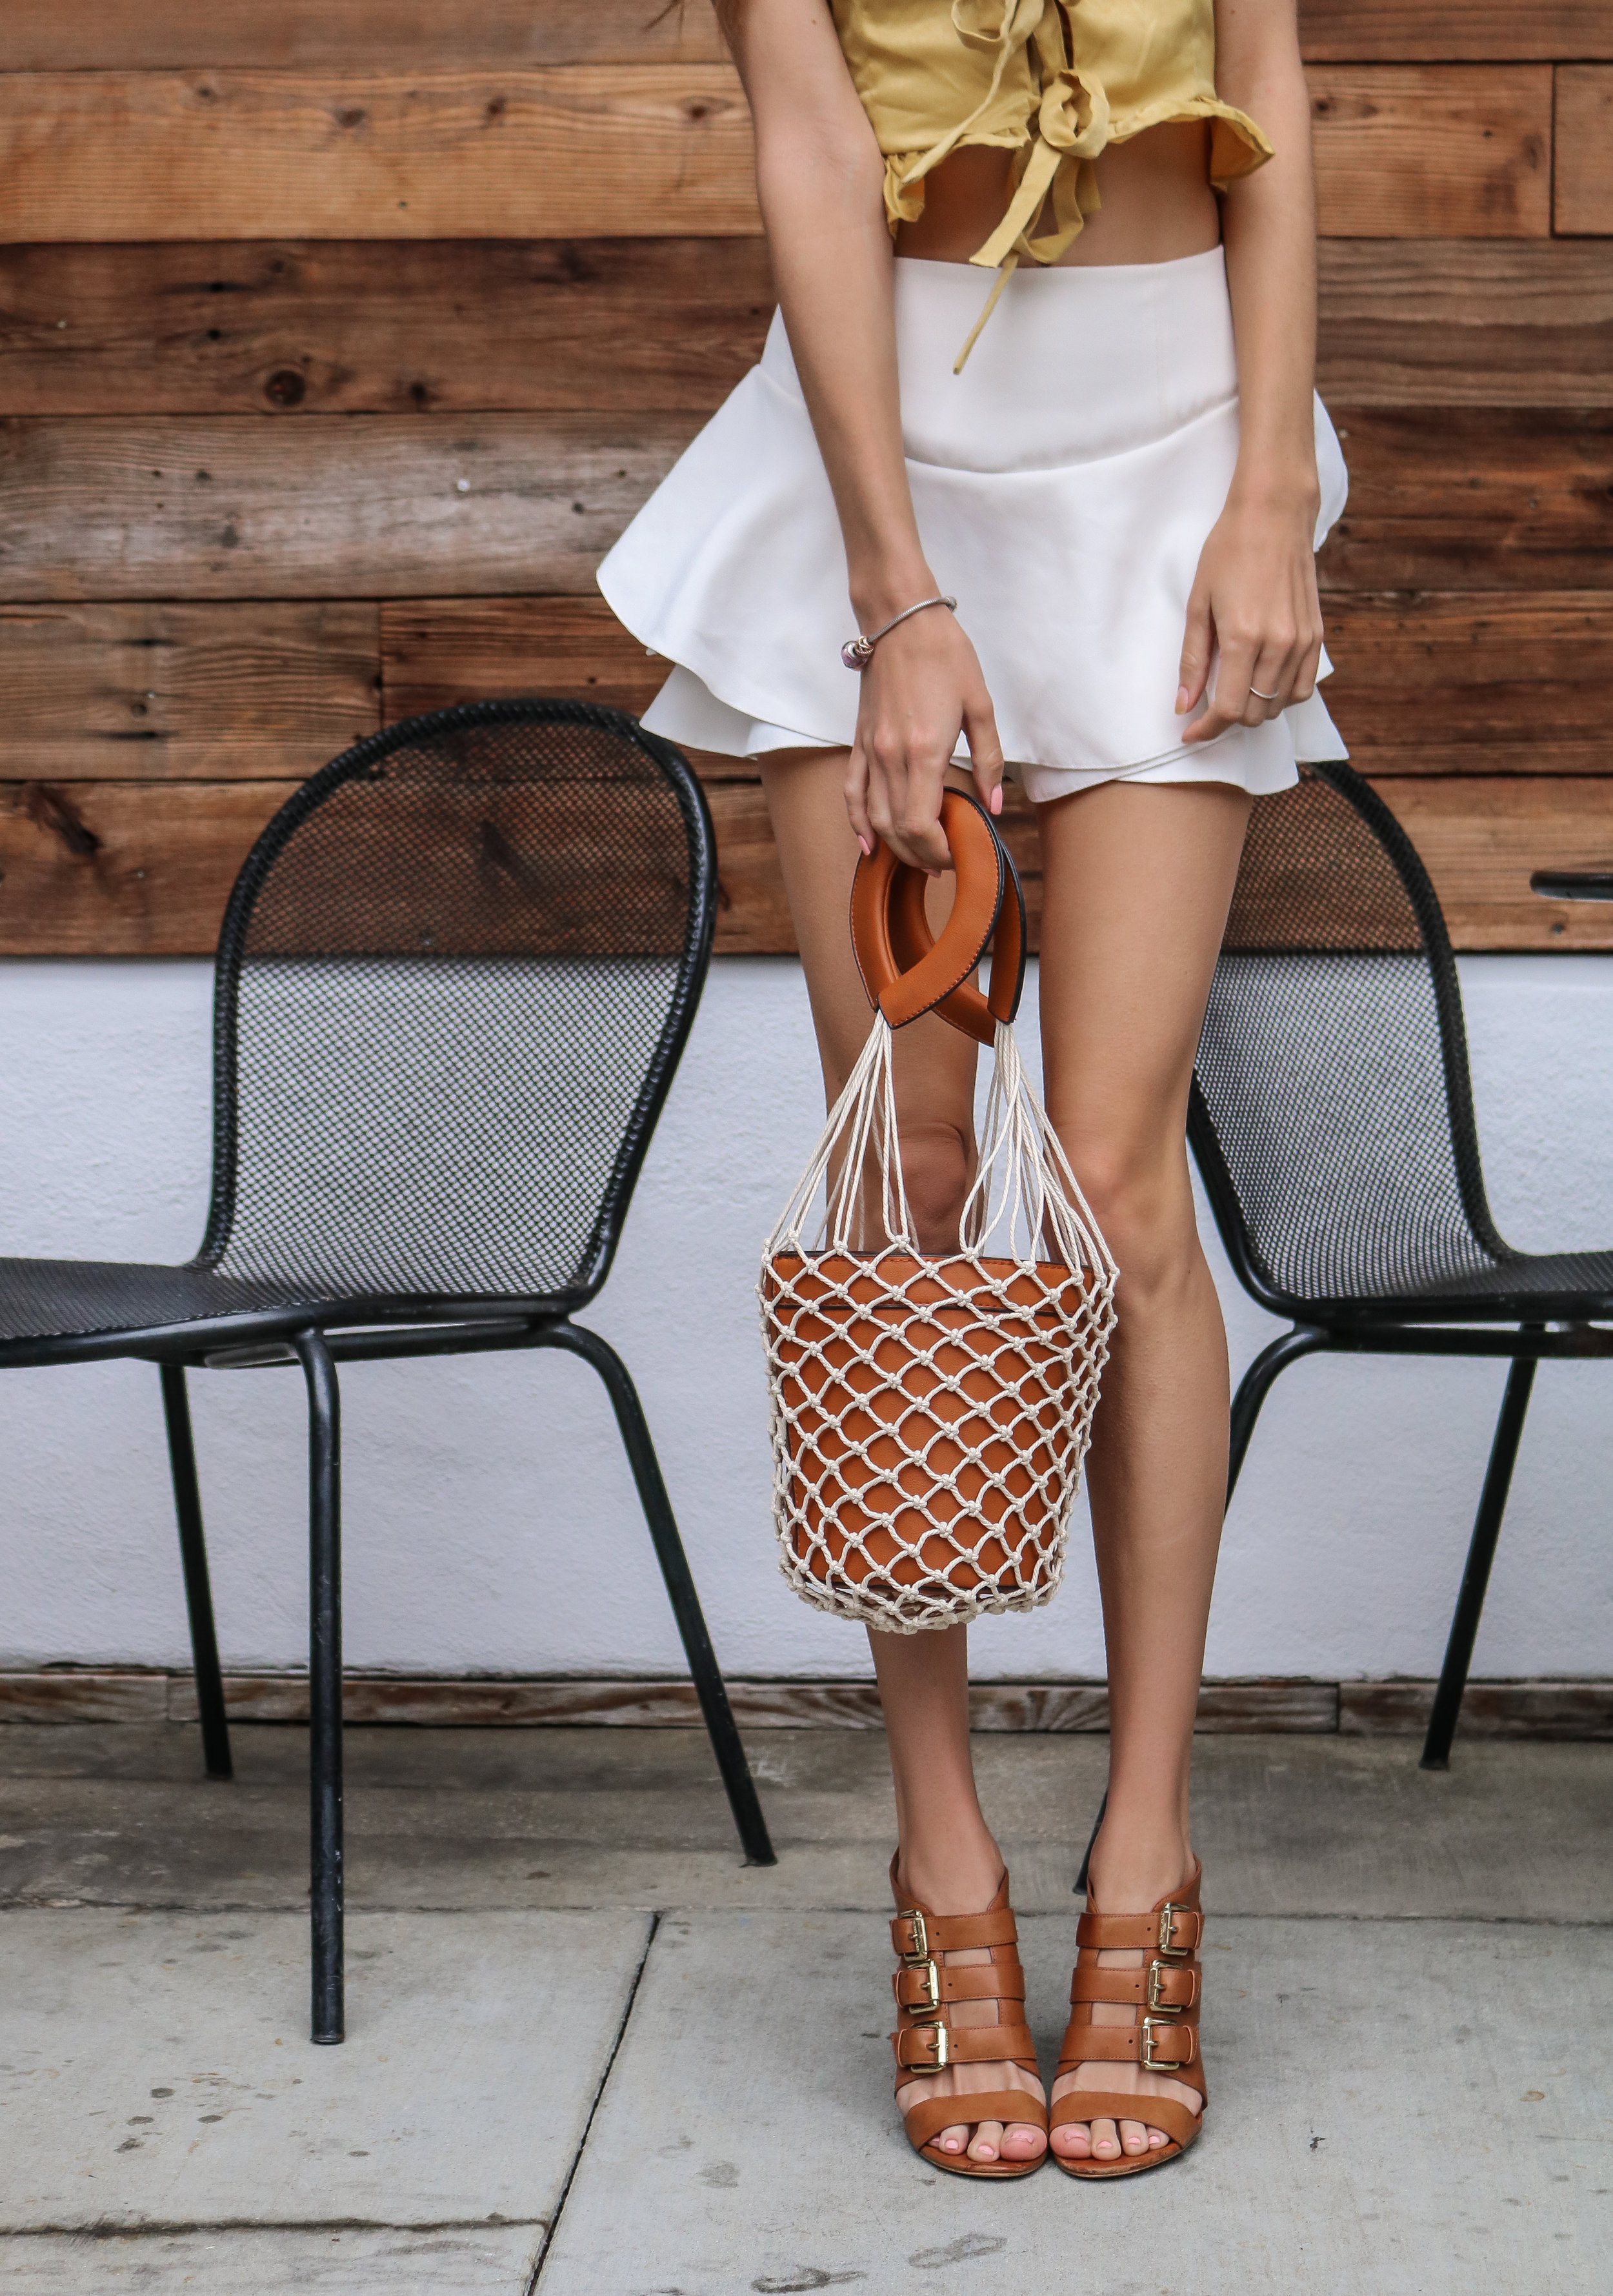 The Hungarian Brunette the best caramel coloured shoes and bags for a summer vacation vibe